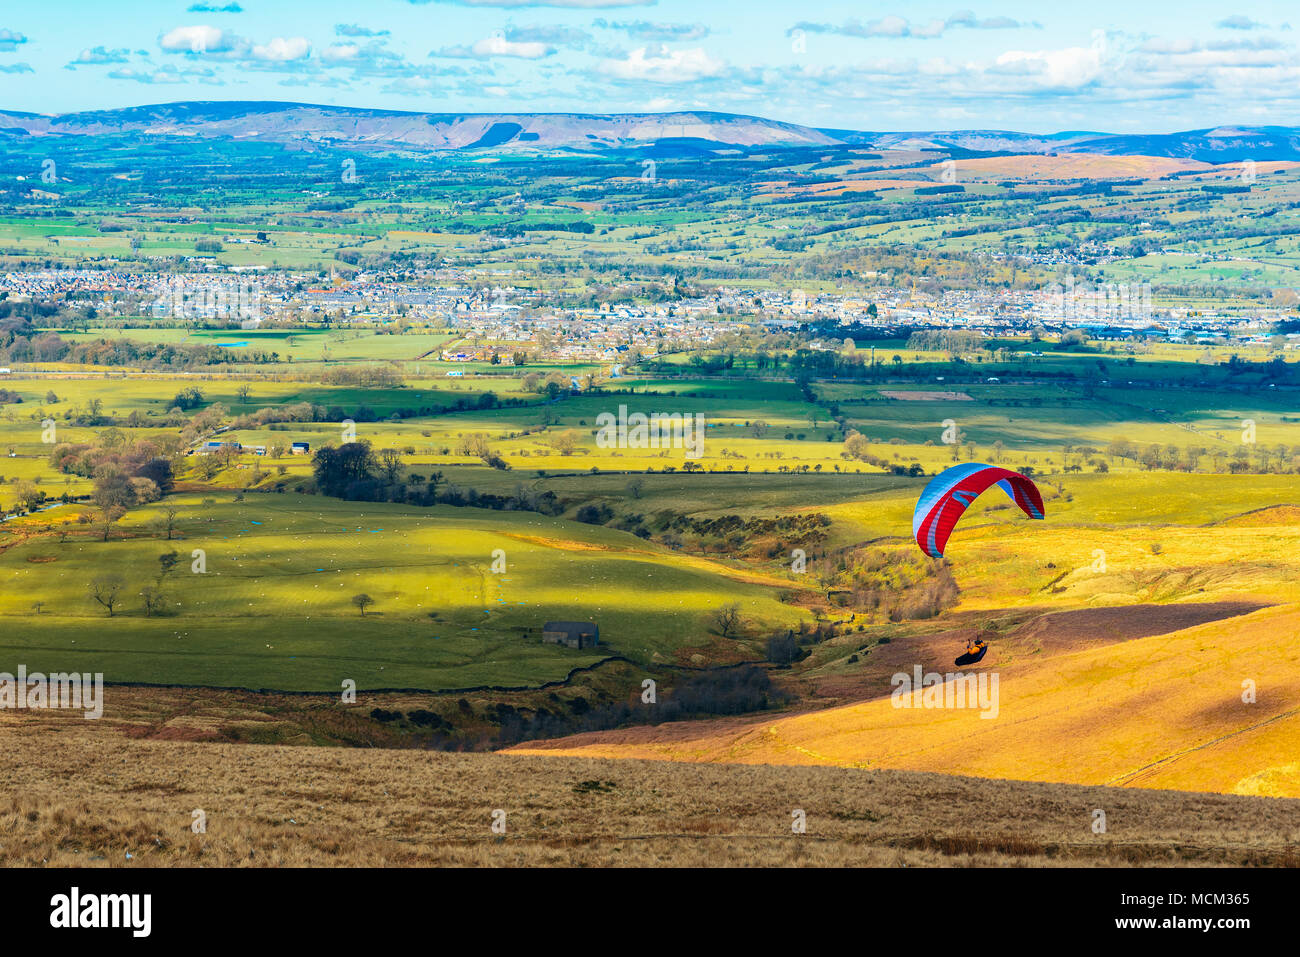 Paraglider above the Ribble Valley, Lancashire, England seen from the launching site on Pendle Hill with Clitheroe below and the Bowland Fells beyond Stock Photo